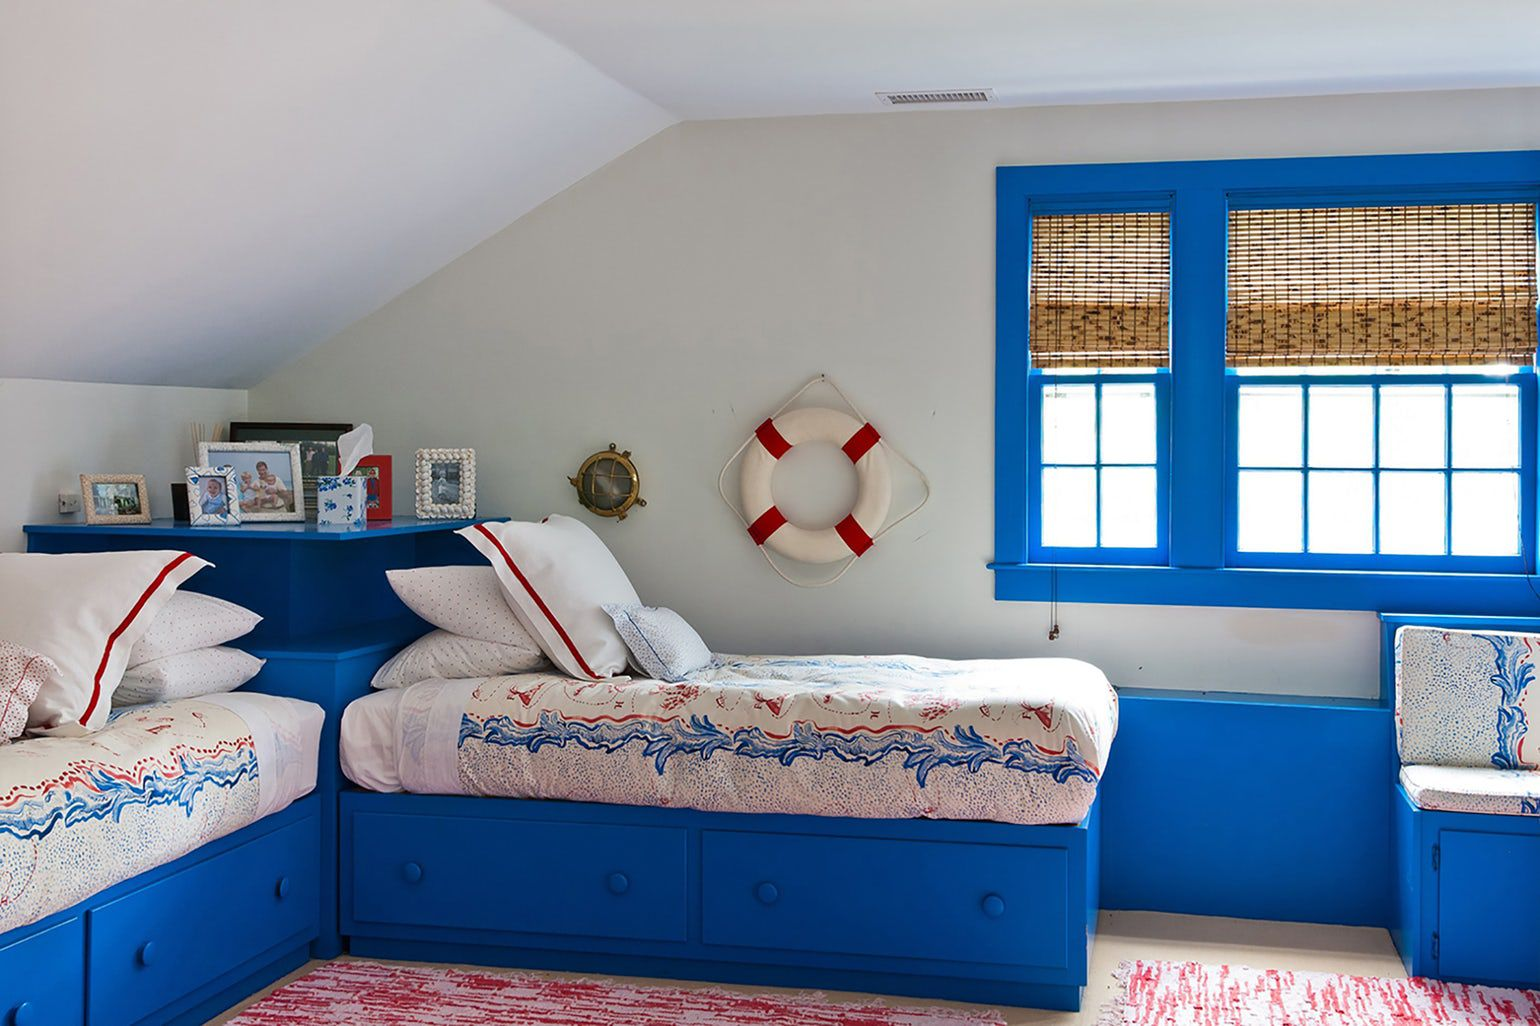 20 Amazing Boys Room Ideas - How to Decorate a Boys Bedroom